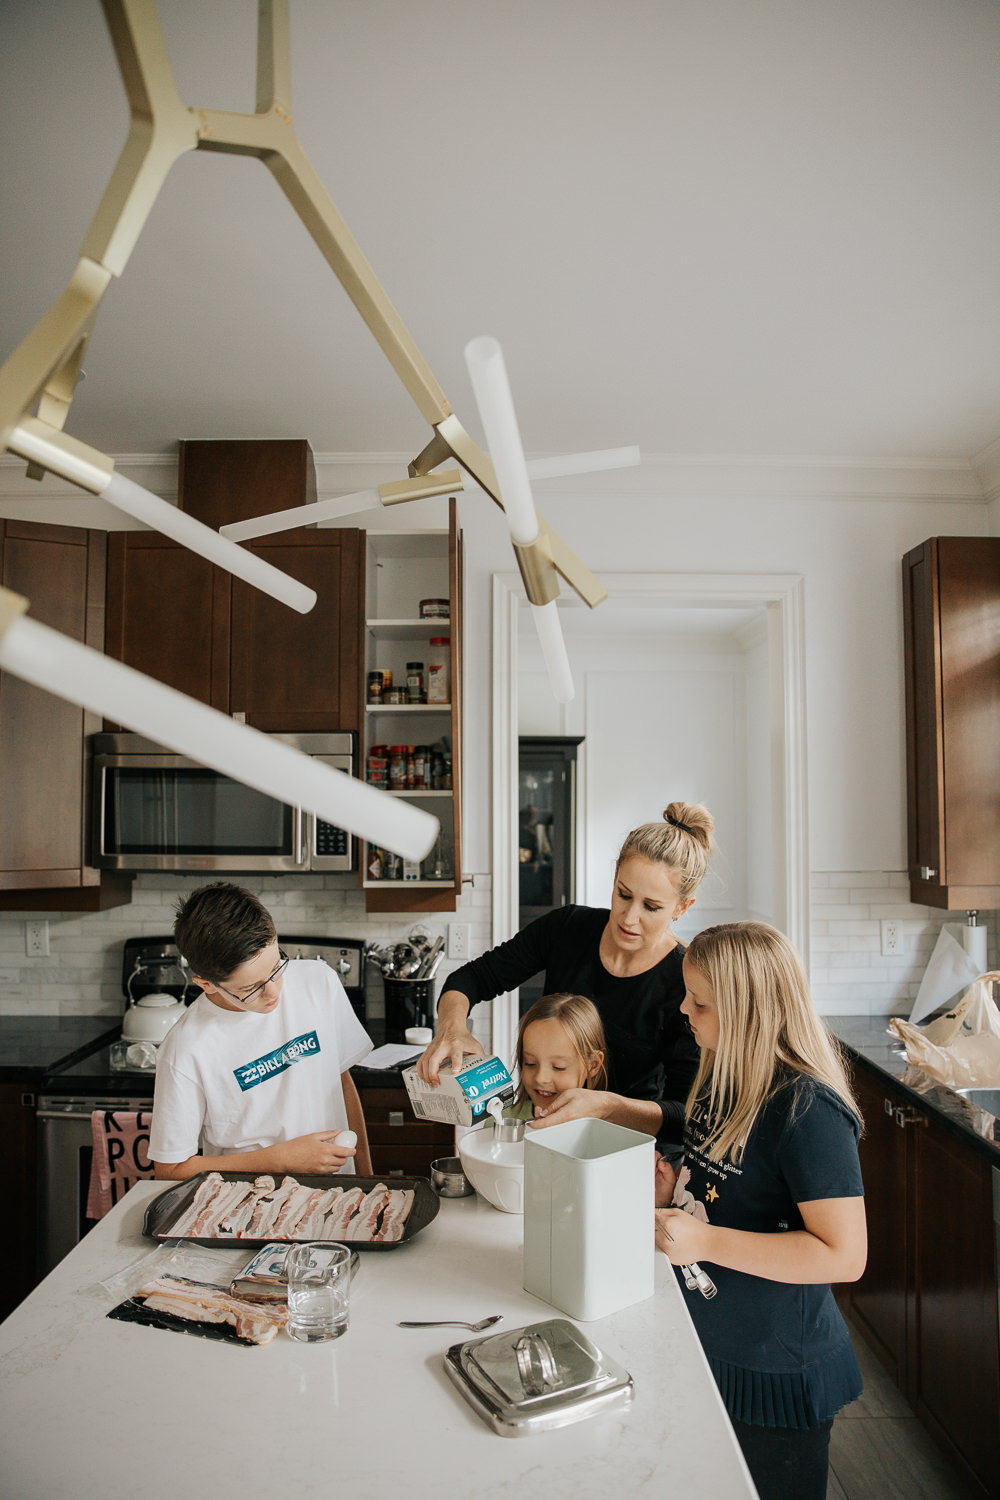 3 children standing at kitchen island with mom helping to mix pancake batter for family brunch, 8 and 10 year old girls, 13 year old boy - GTA Lifestyle Photos